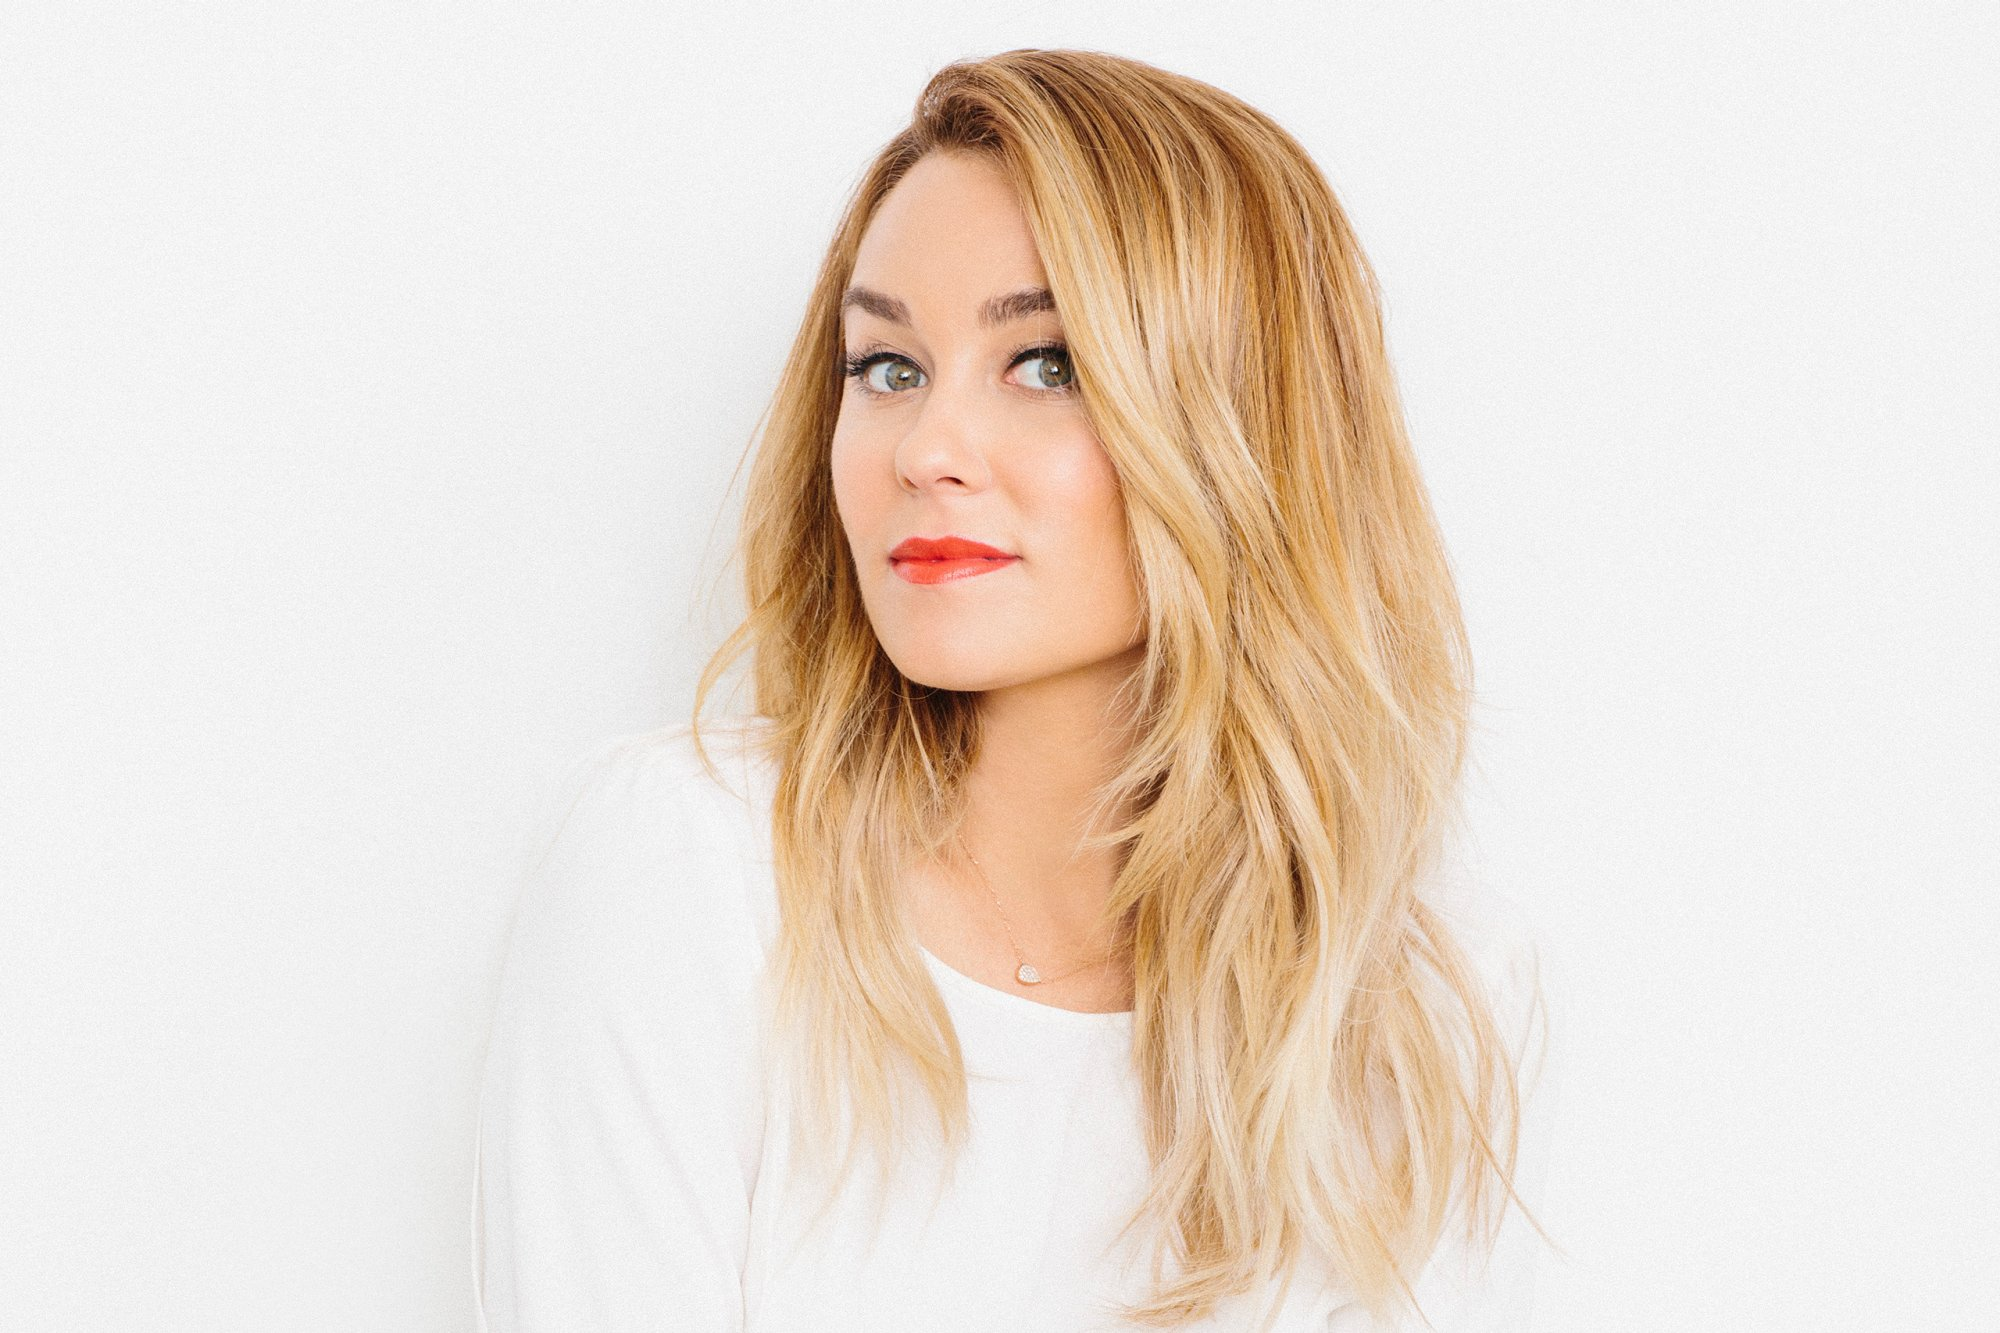 lauren conrad wallpaper 2016